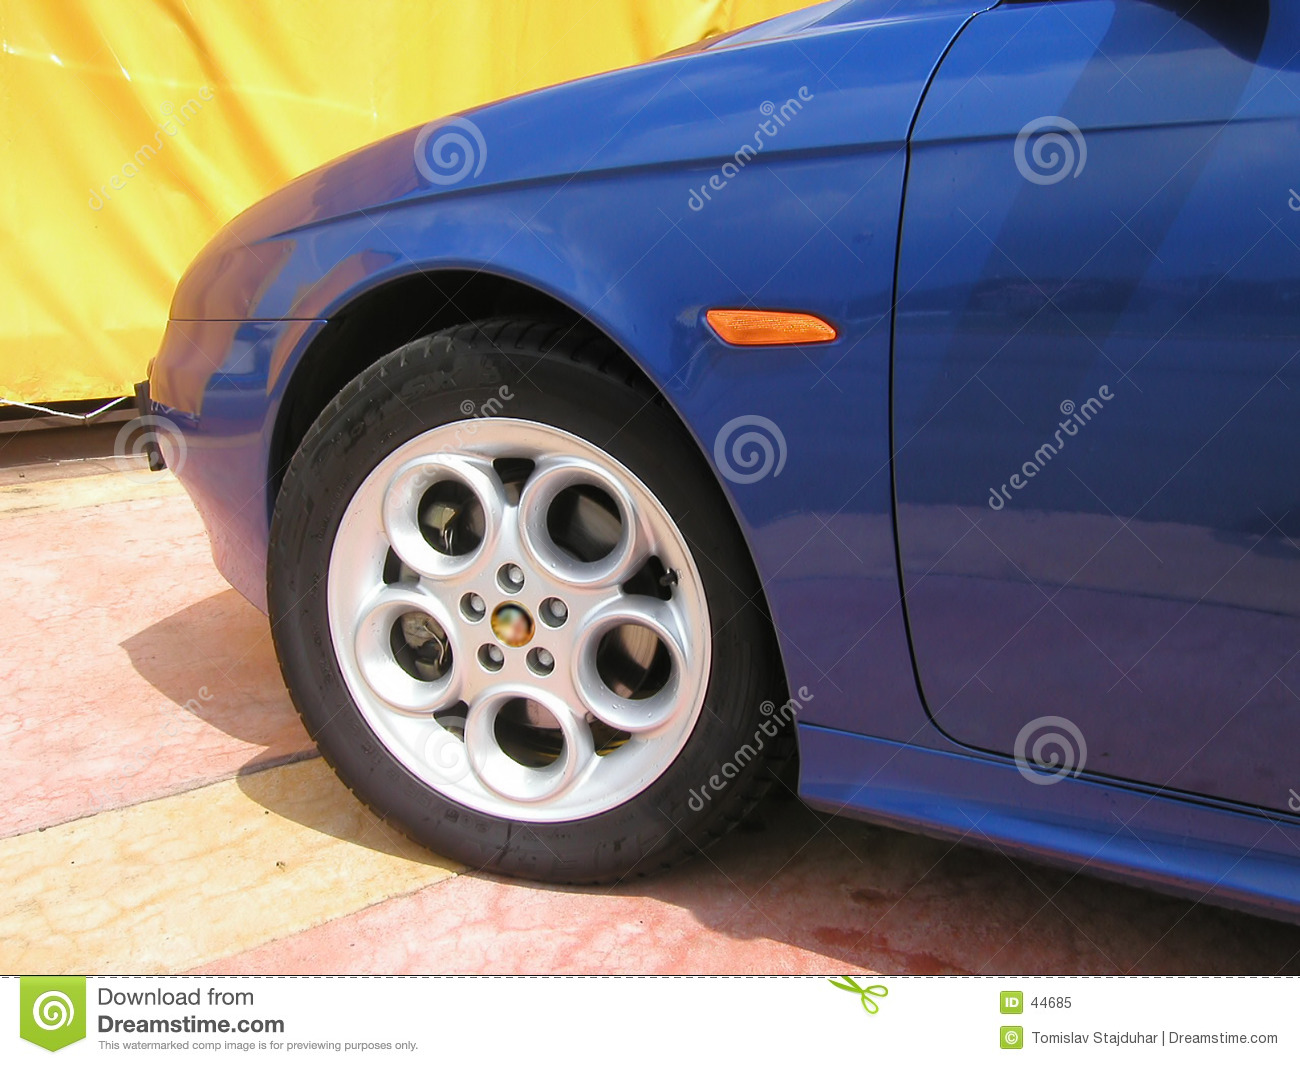 Wheel of Alfa Romeo 156